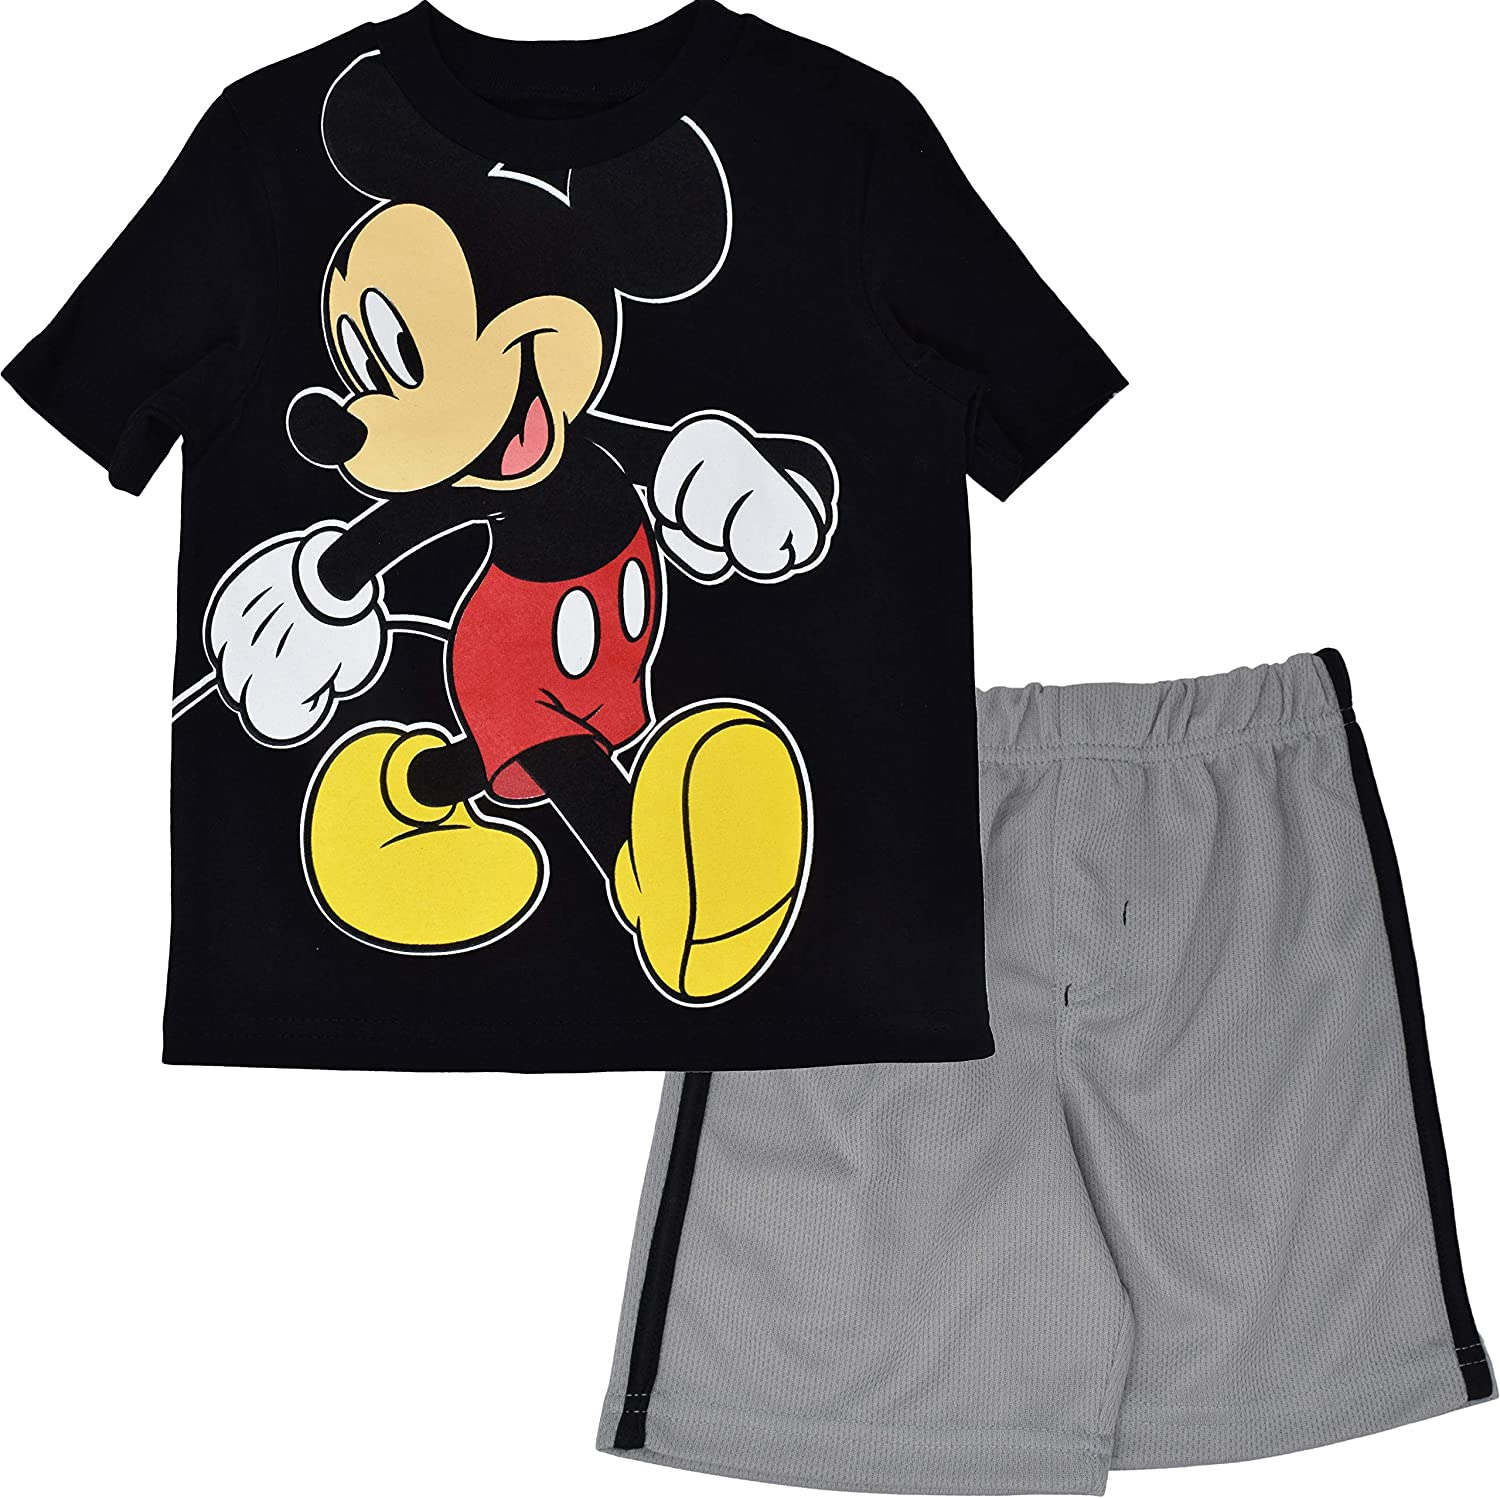 MICKEY MOUSE DISNEY T-Shirt /& Shorts Outfit Clothing Set NWT Size 3T or 4T  $28